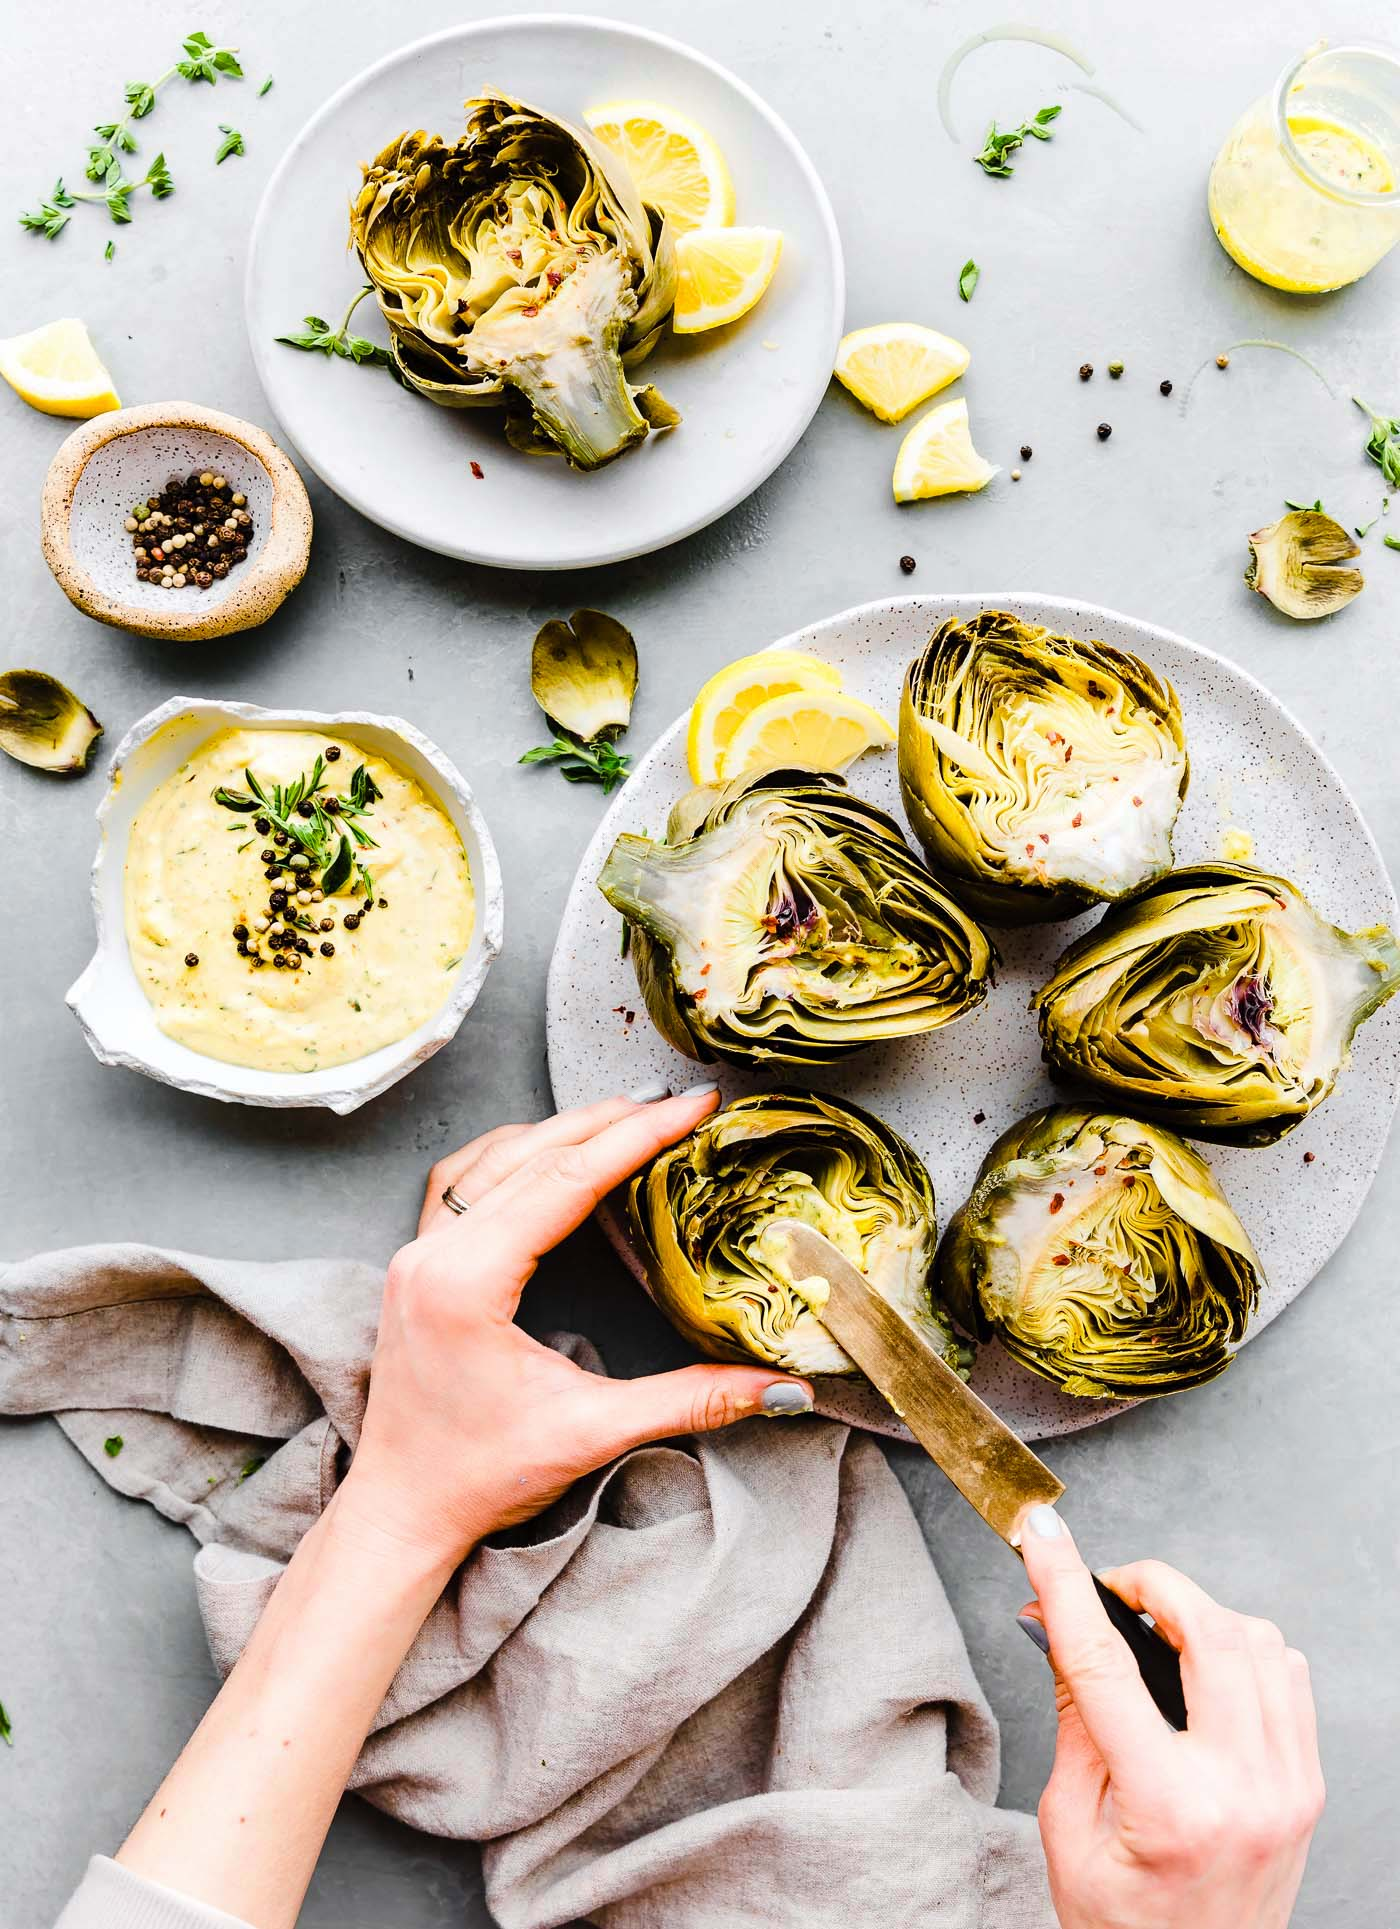 Steamed Artichokes with Mediterranean Aioli are not only delicious, but nutritious!